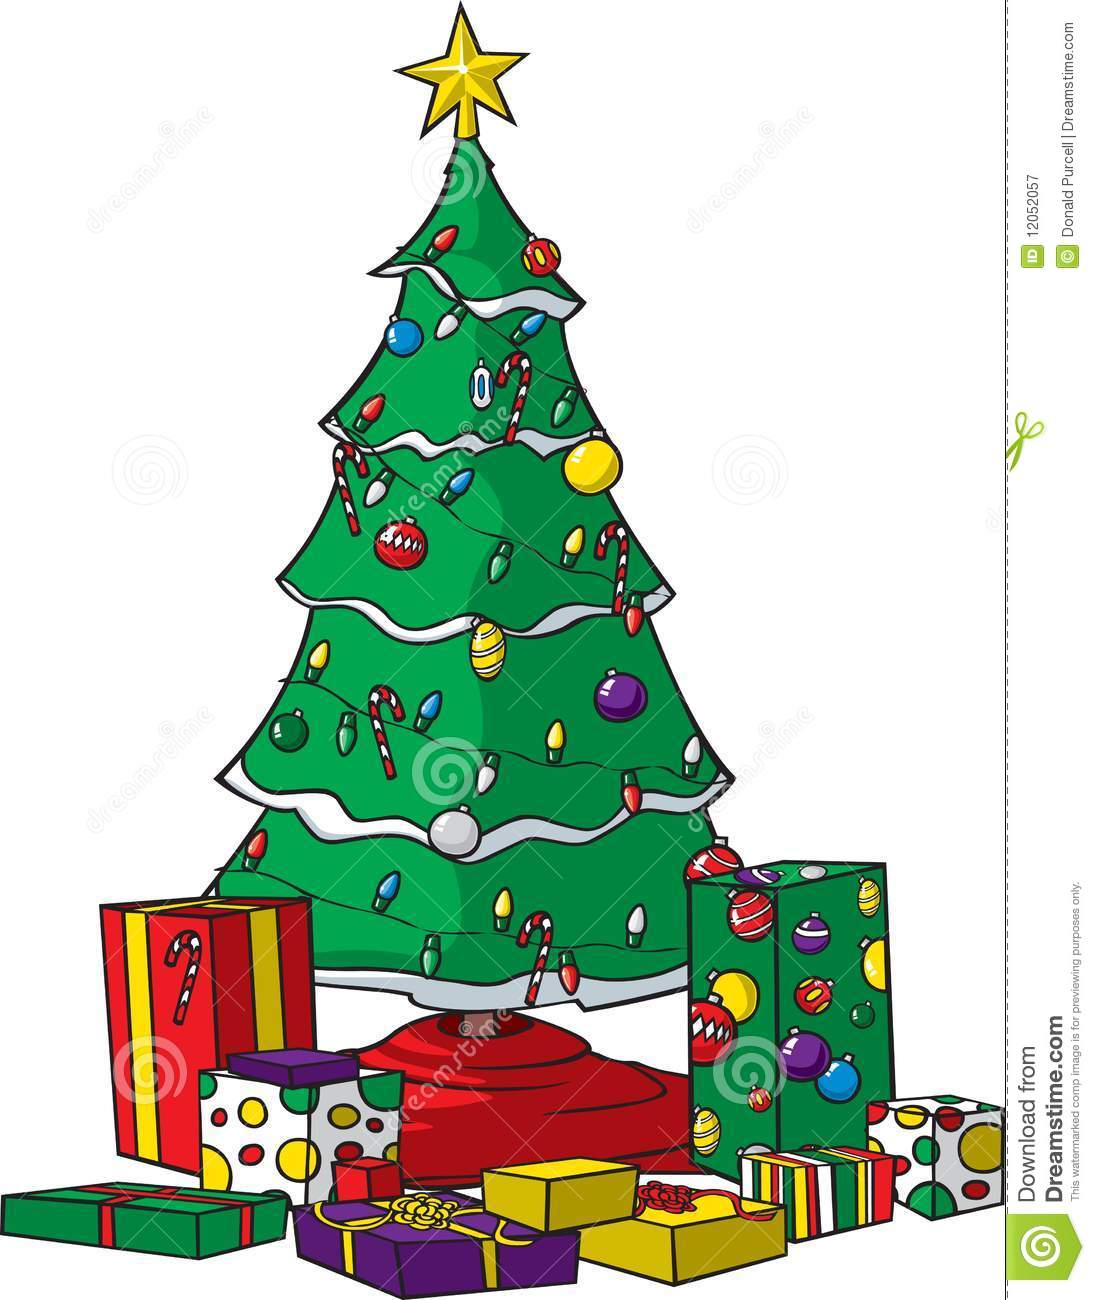 christmas tree with presents stock vector - illustration of deck